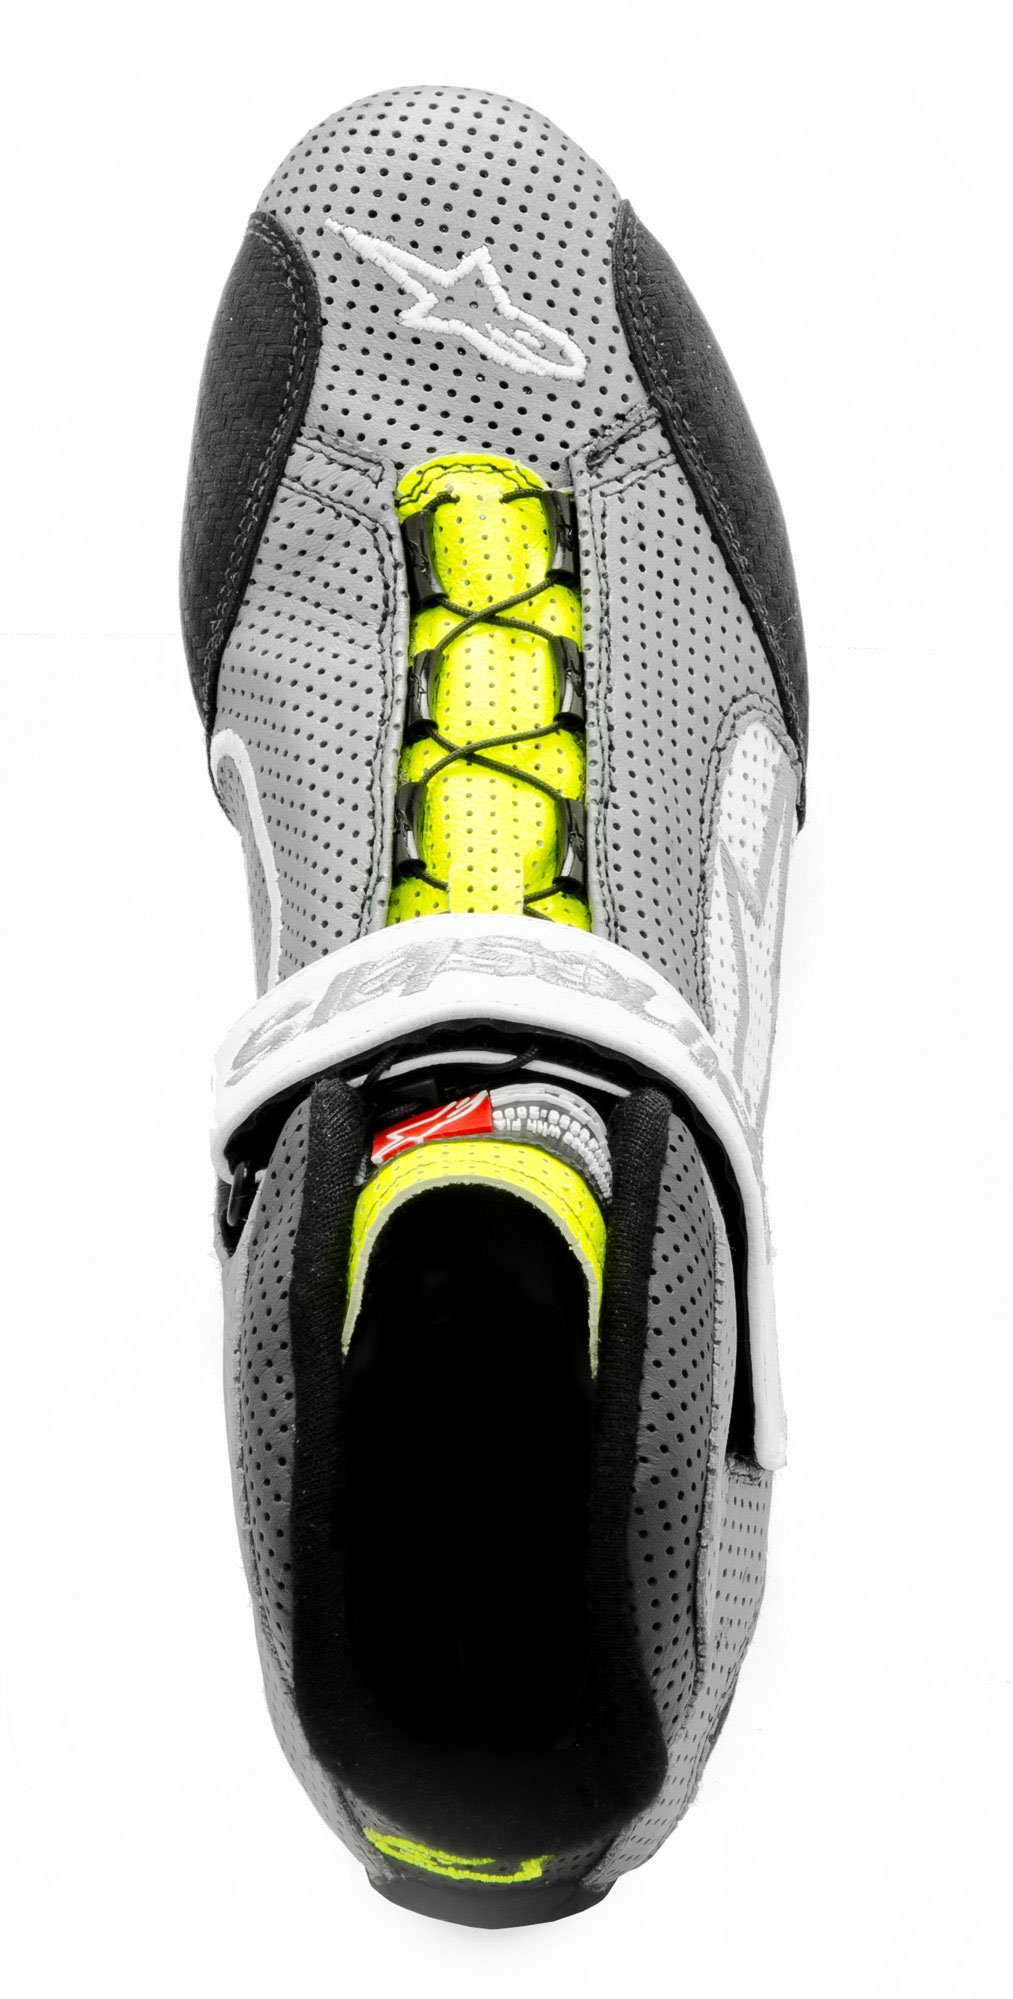 tech-1-z-gray-yellow-fluo-rot5